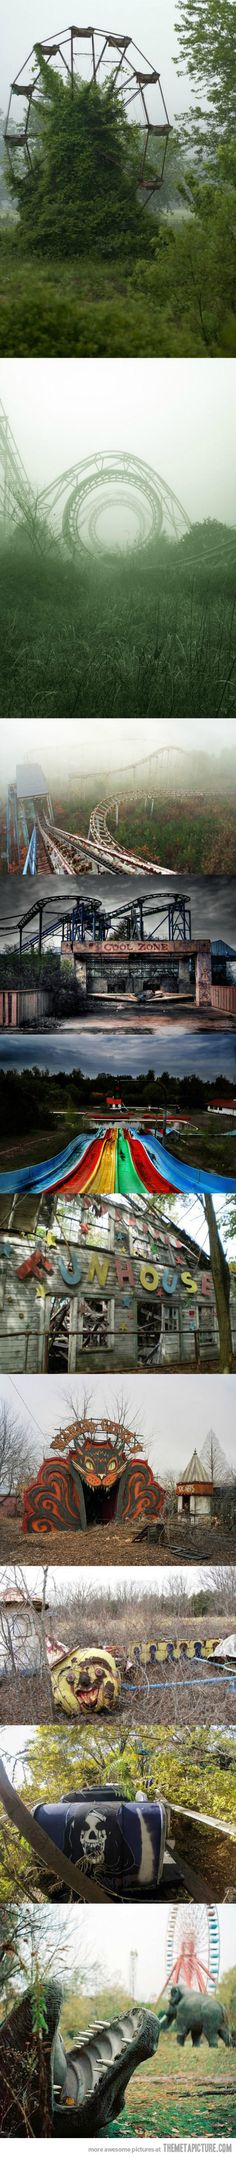 Creepy Photos of Abandoned Amusement Parks. Creepy, but super cool...I'm just weird like that Abandoned Theme Parks, Abandoned Amusement Parks, Abandoned Mansions, Abandoned Buildings, Abandoned Places, Creepy Photos, Beautiful Places, Haunted Places, Old Buildings